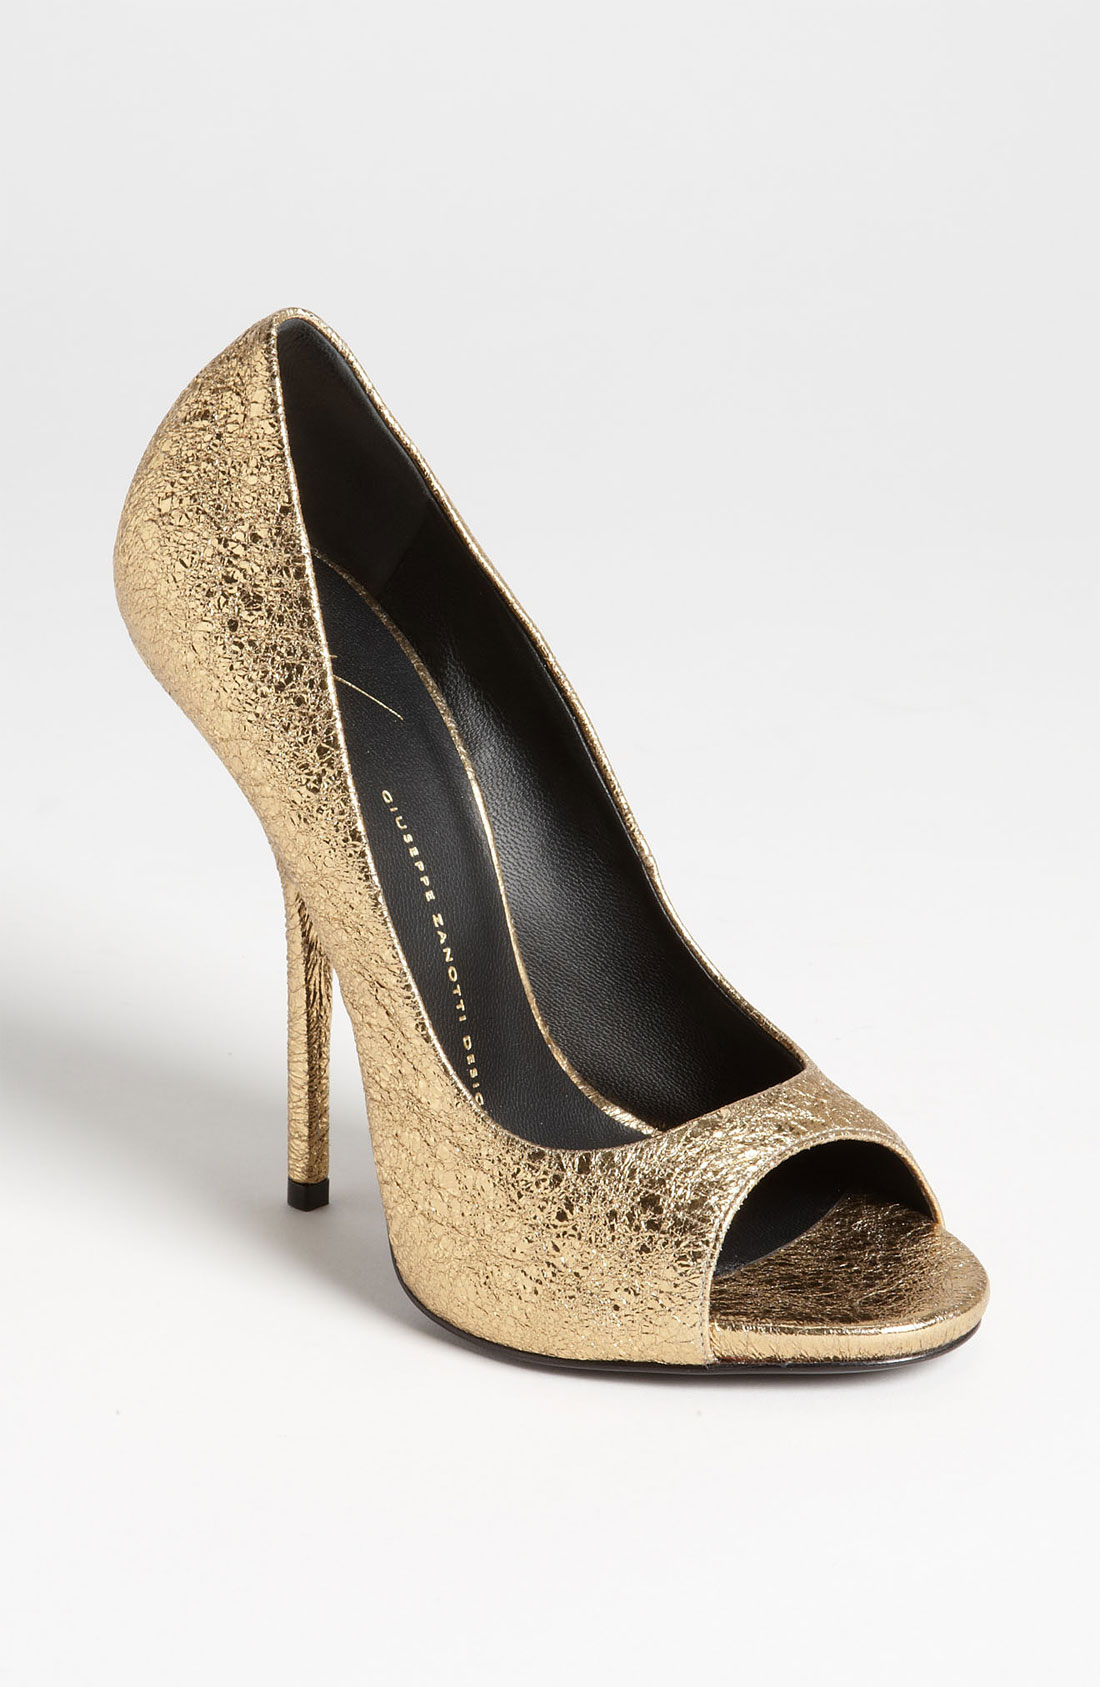 Open Toe Gold Heels - Is Heel